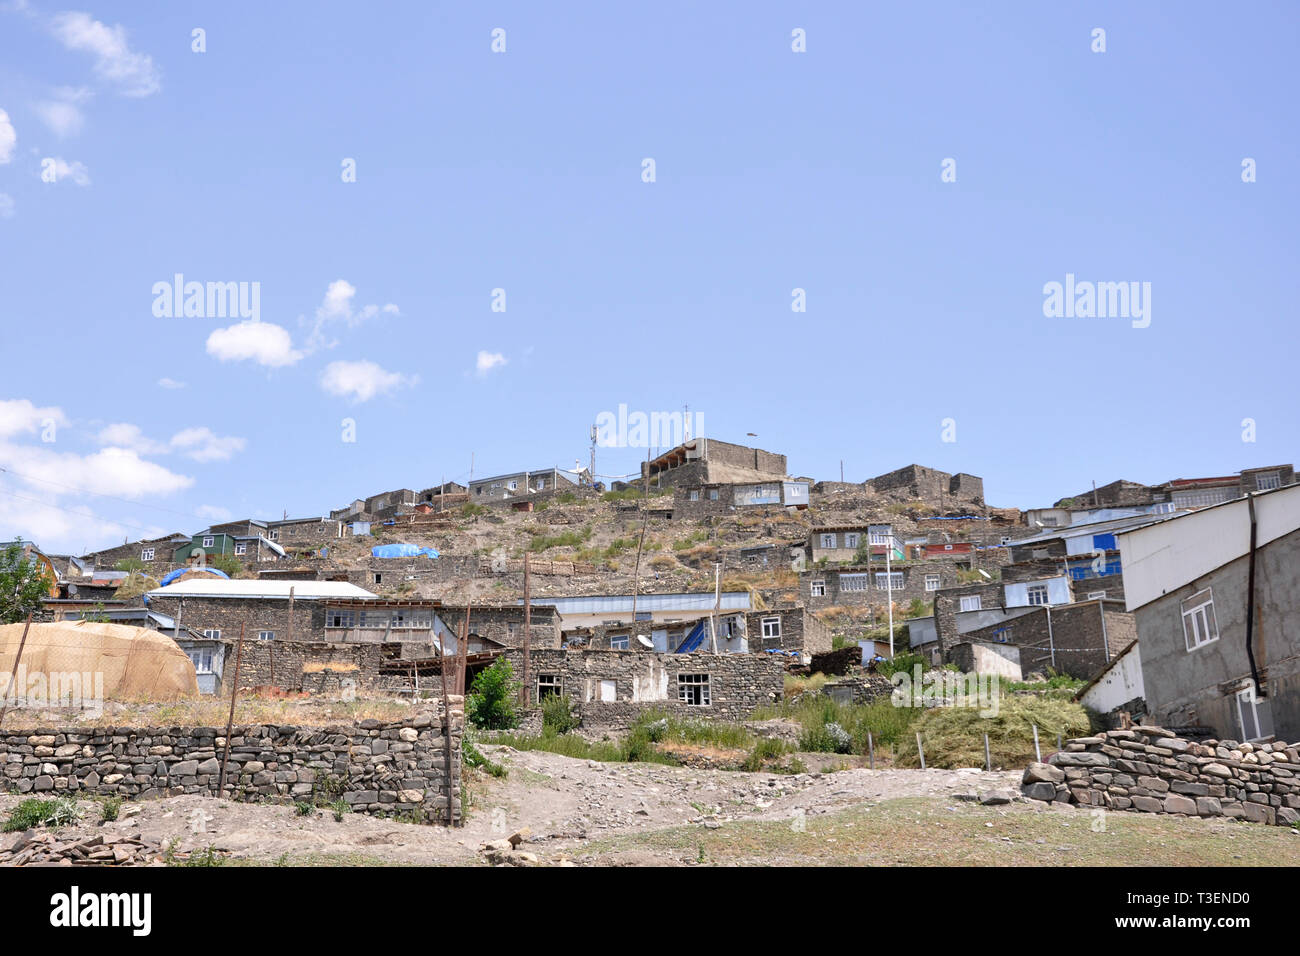 Azerbaijan, Khimalig village Stock Photo